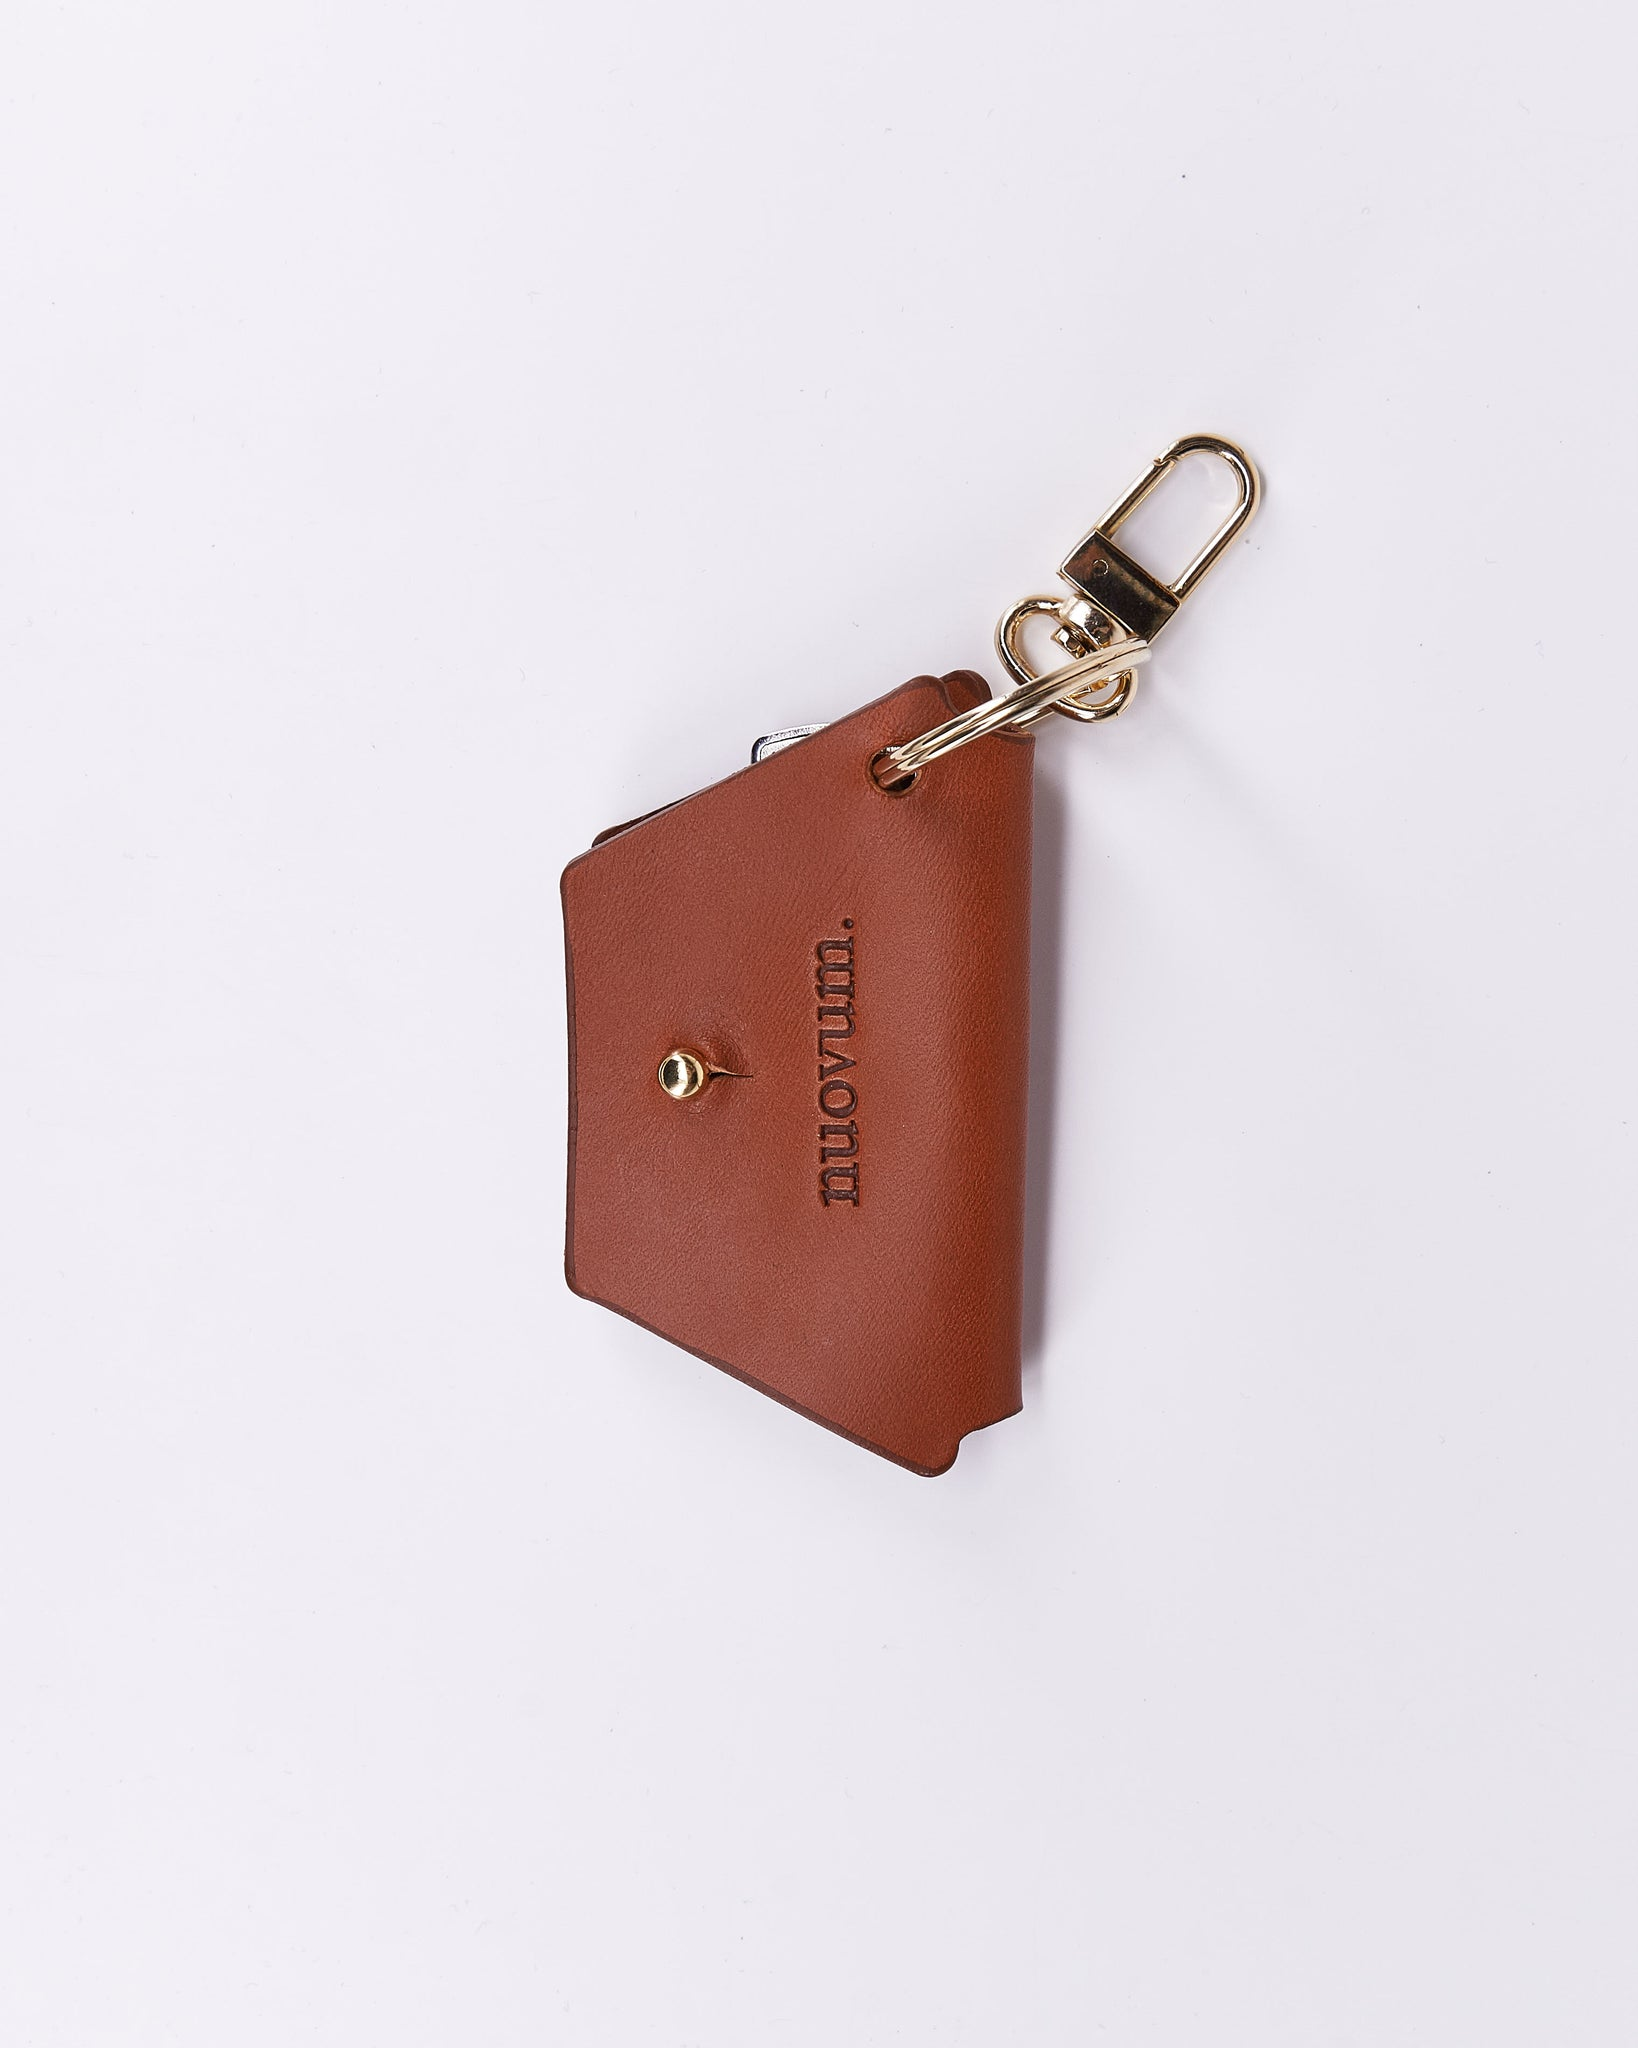 KeyWrap-Nuovum-Leather-Brown-localdesigners-Barcelona-Nuovum-Handmade-Close